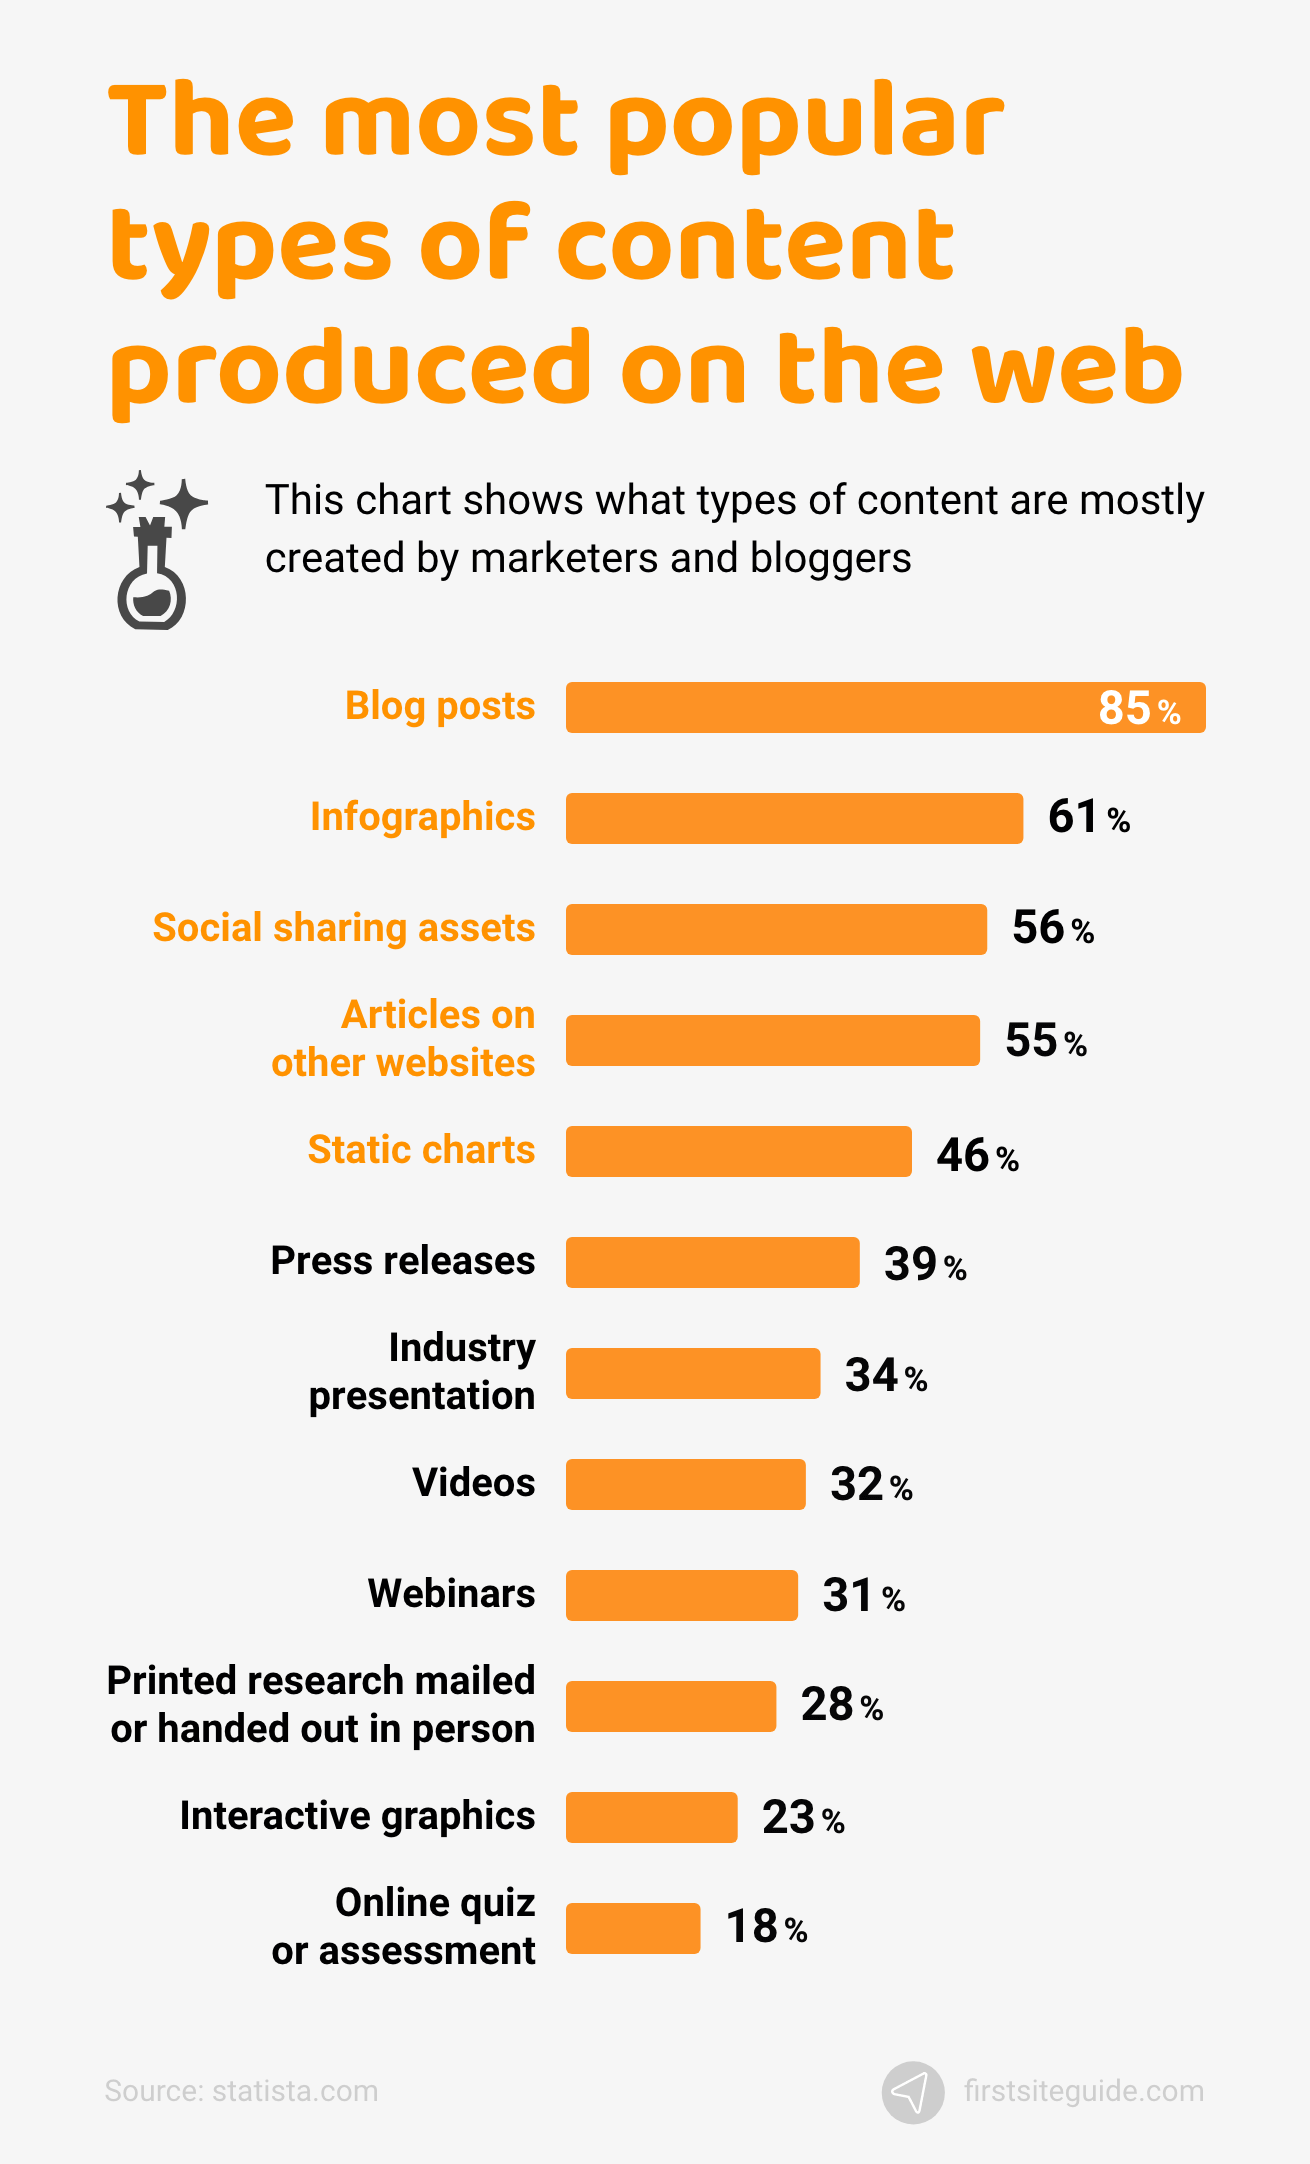 The most popular types of content produced on the web